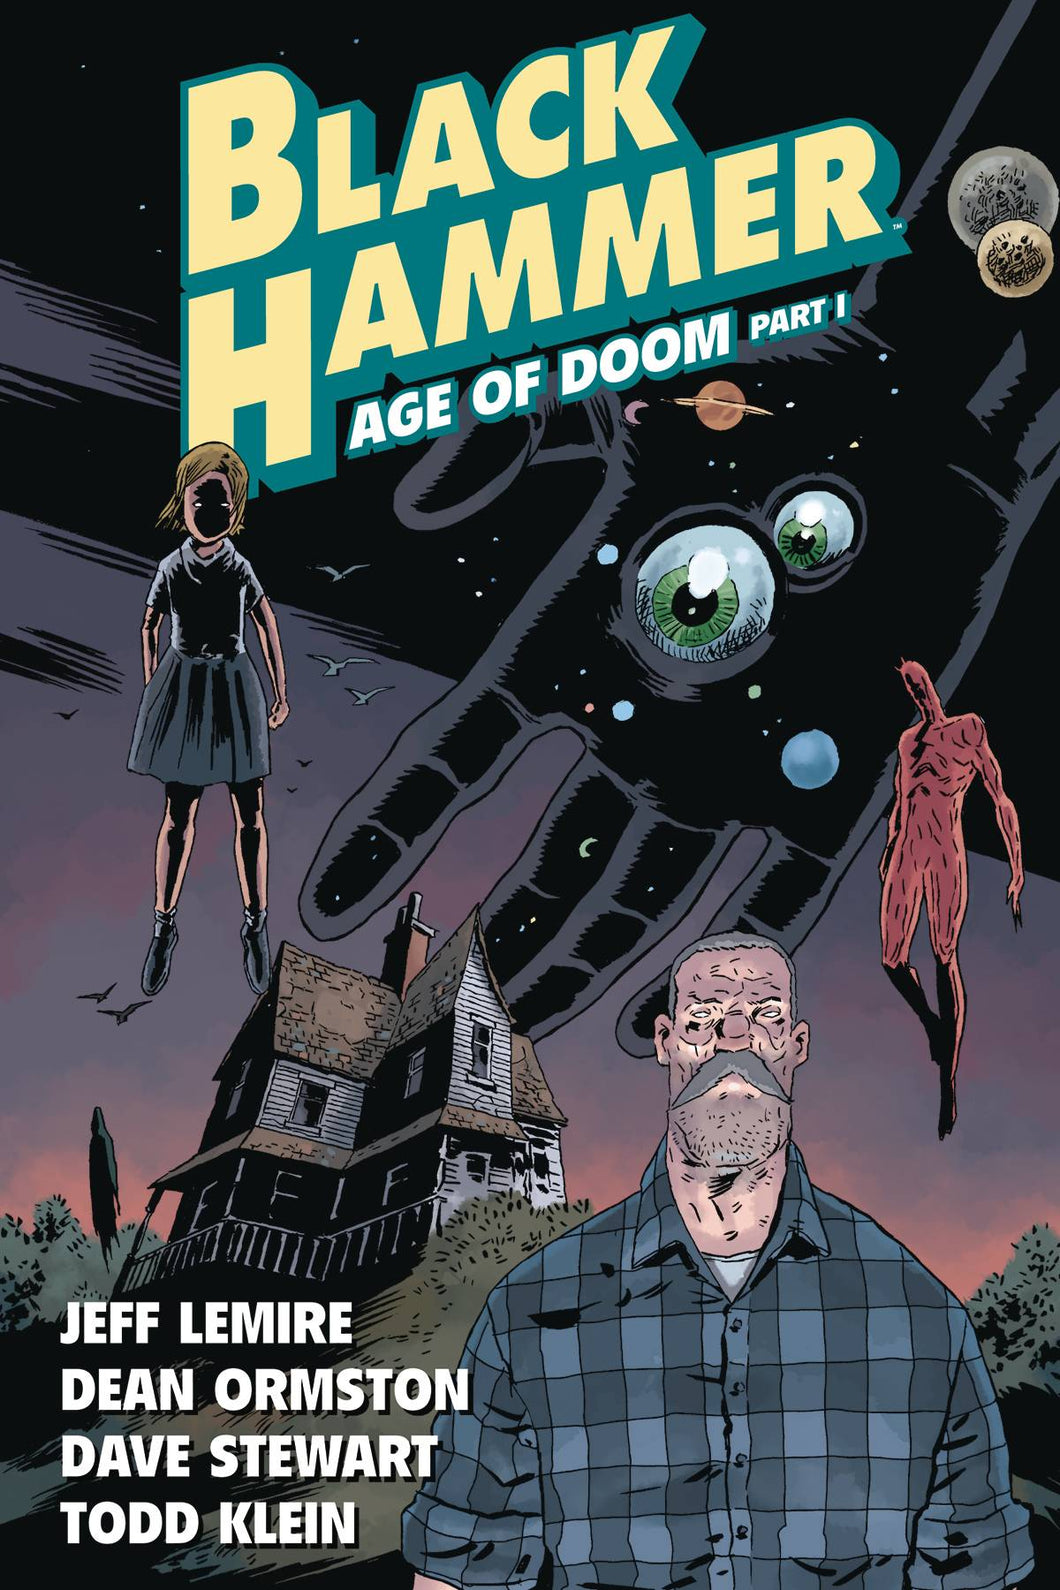 BLACK HAMMER TP VOL 03 AGE OF DOOM PART I